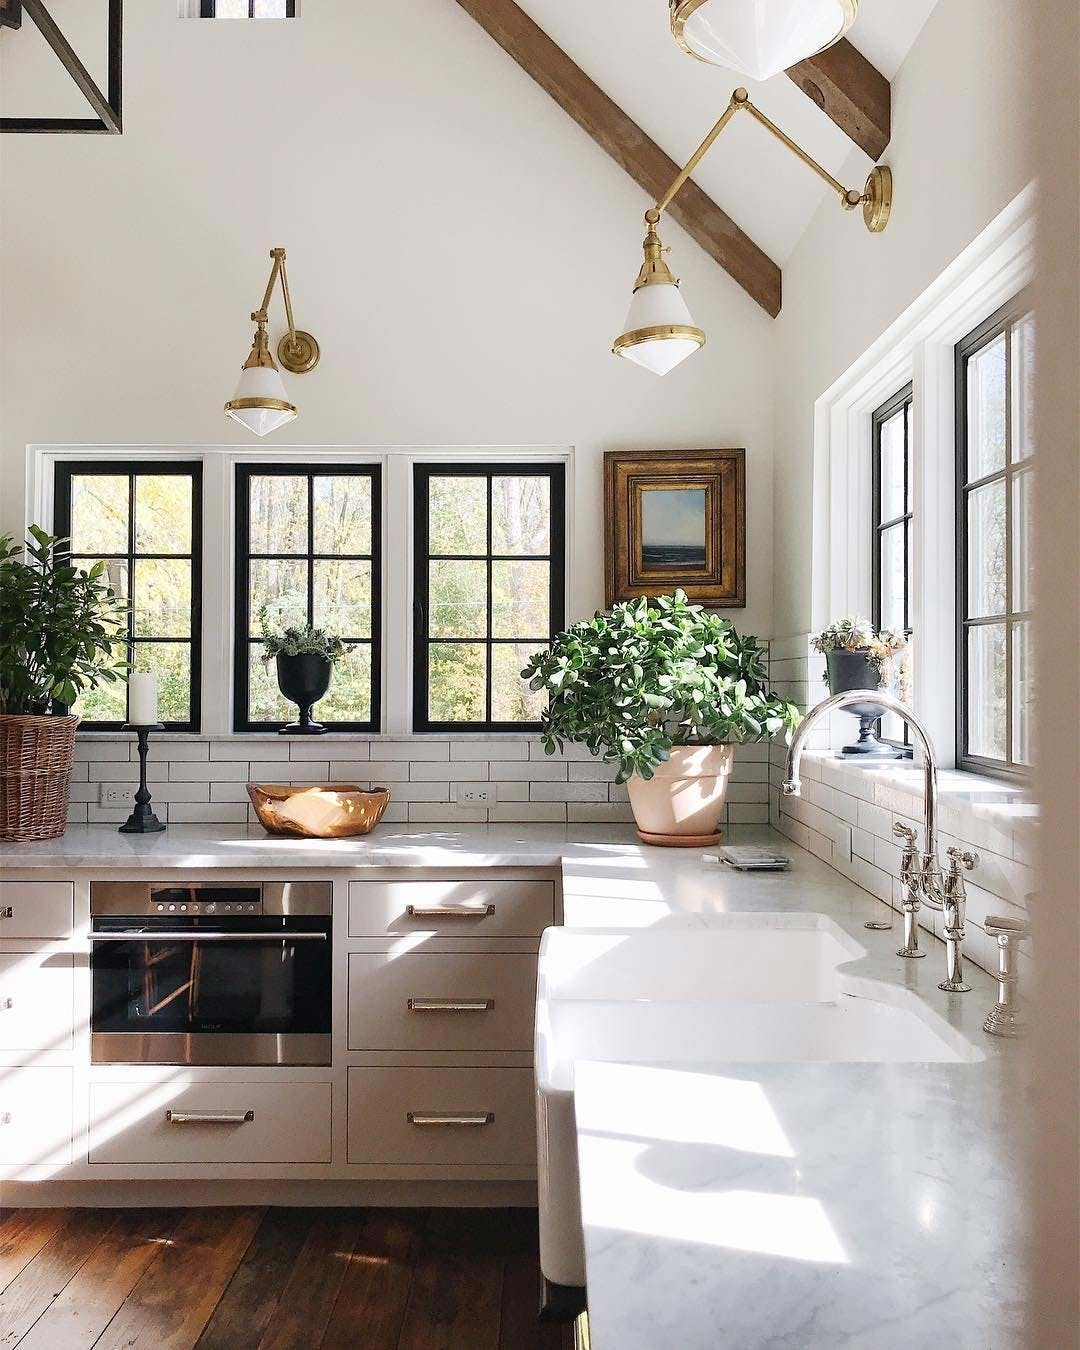 10 Easy Ways To Make Your Kitchen Fancier